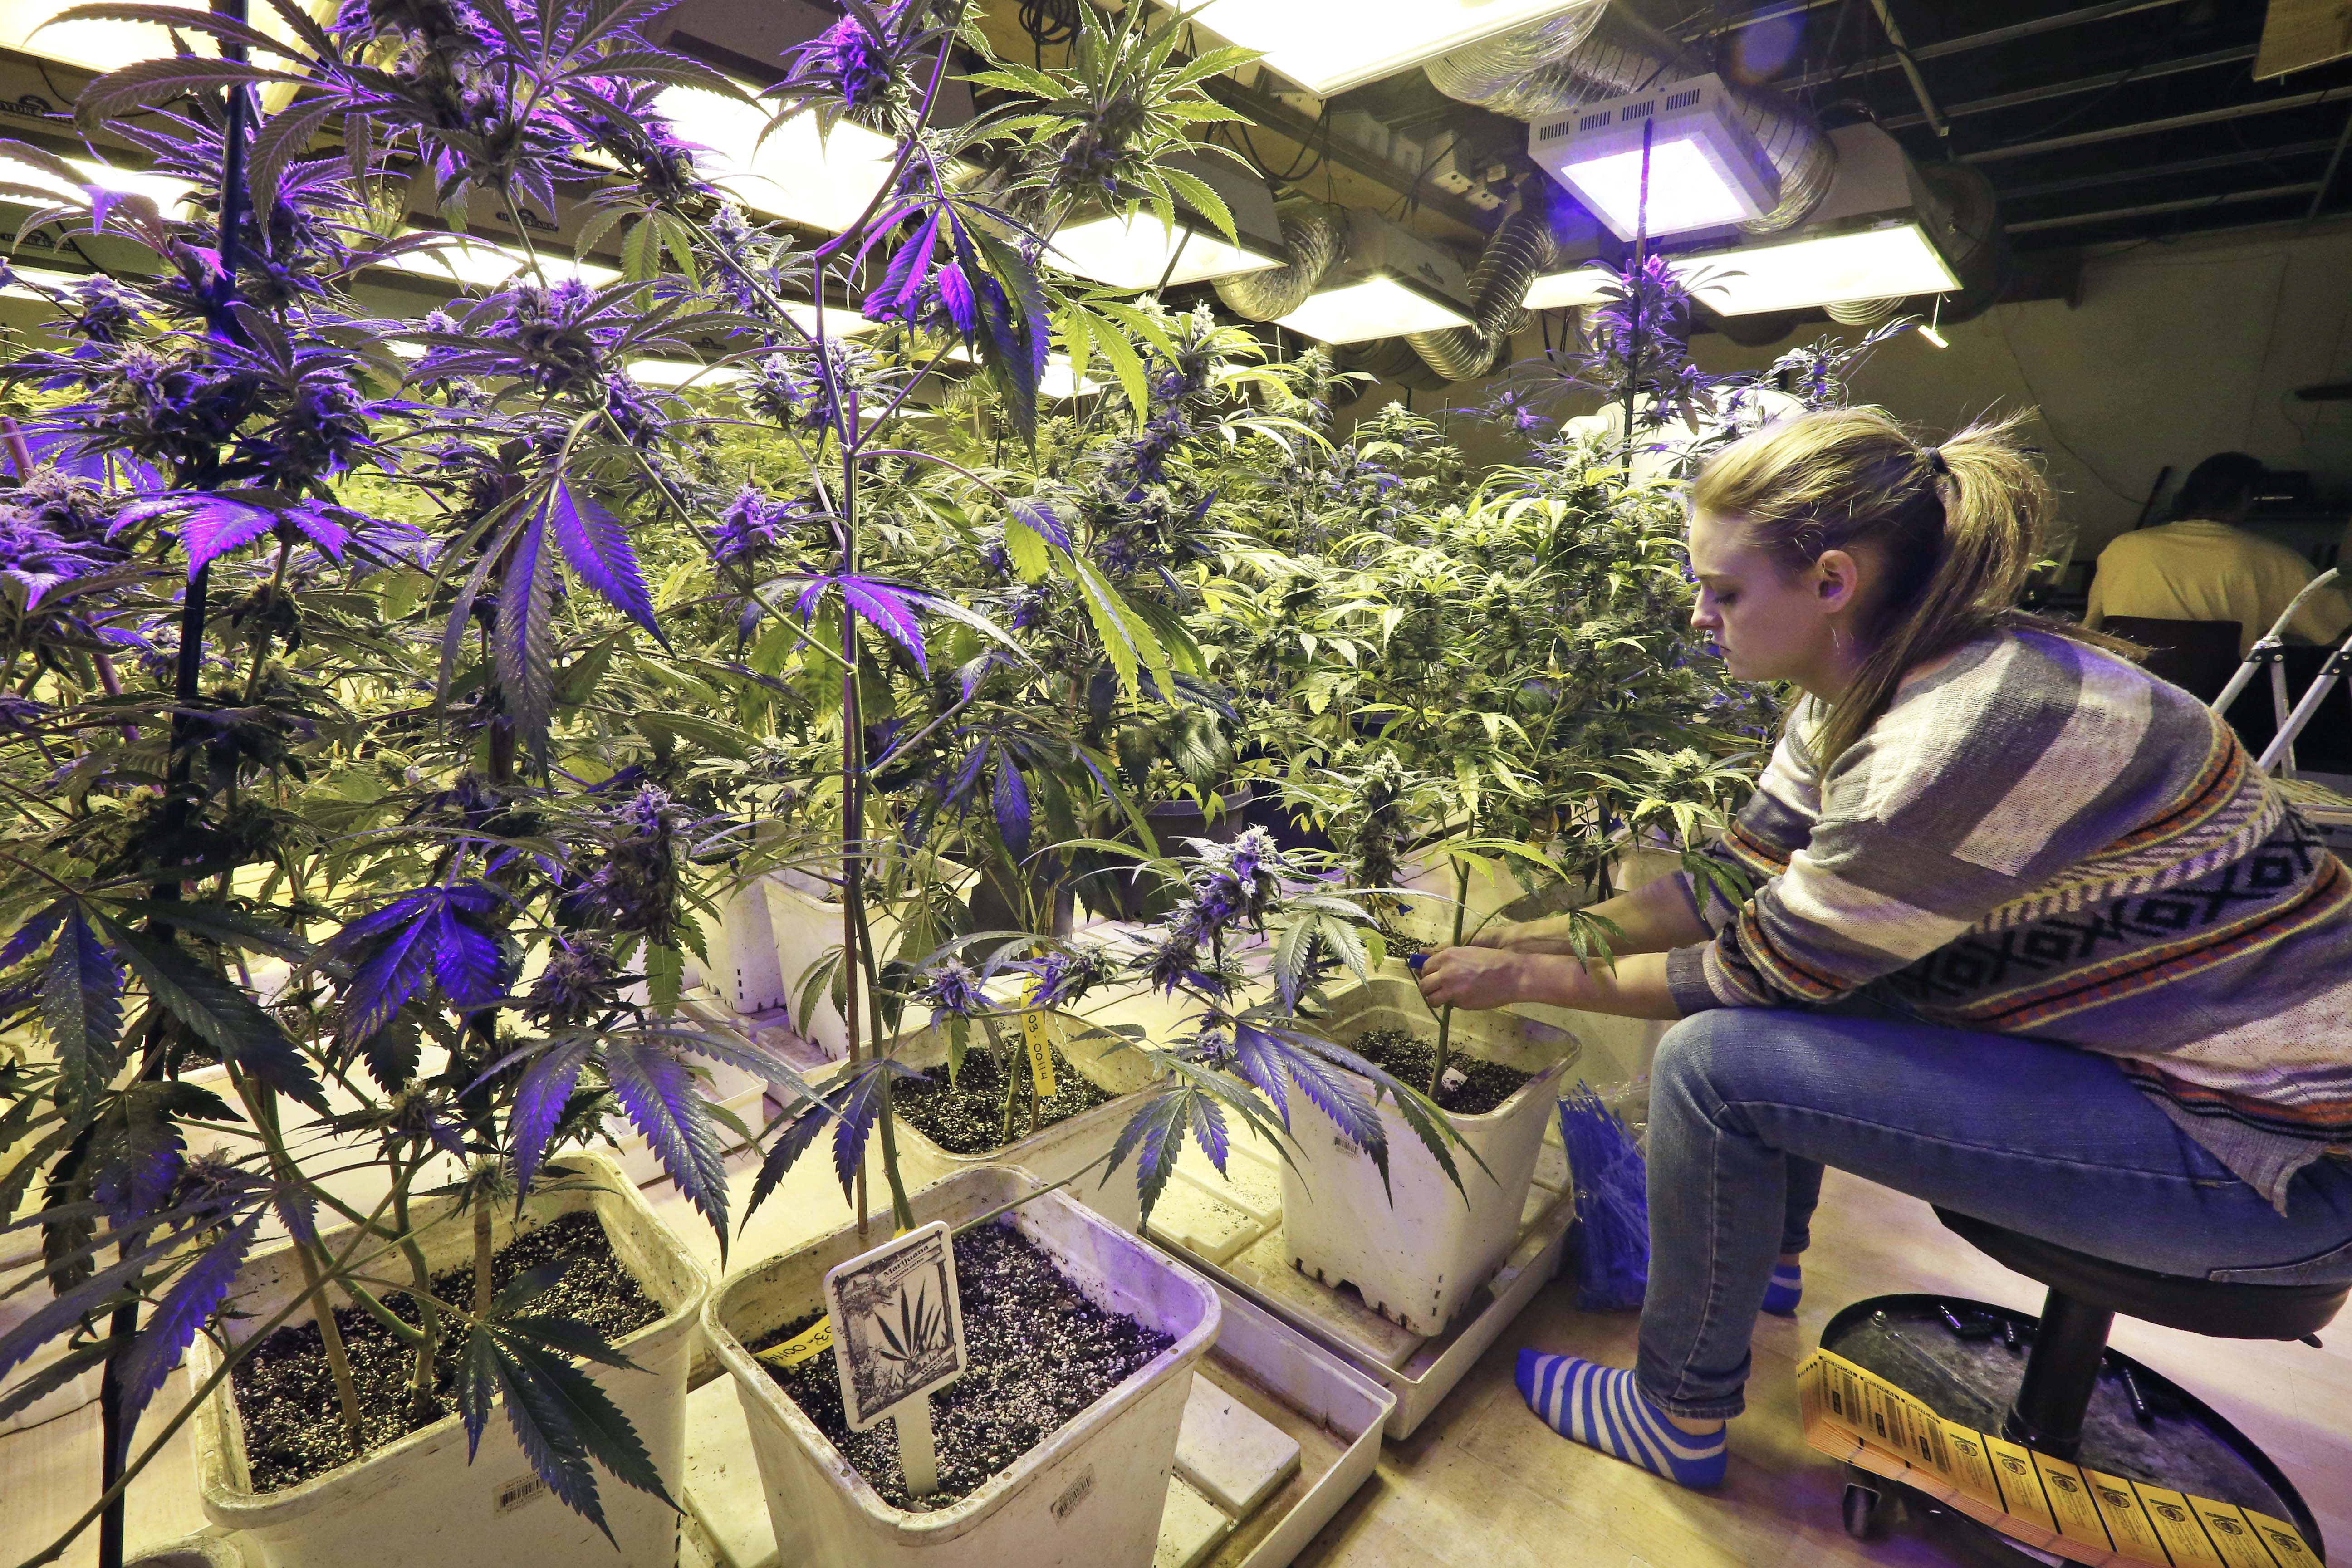 the legalization of marjuana An organized big money lobby marijuana legalization and/or liberalization has big money behind it, primarily through a few billionaires who support an array of groups lobbying full time to advocate weaker drug laws.